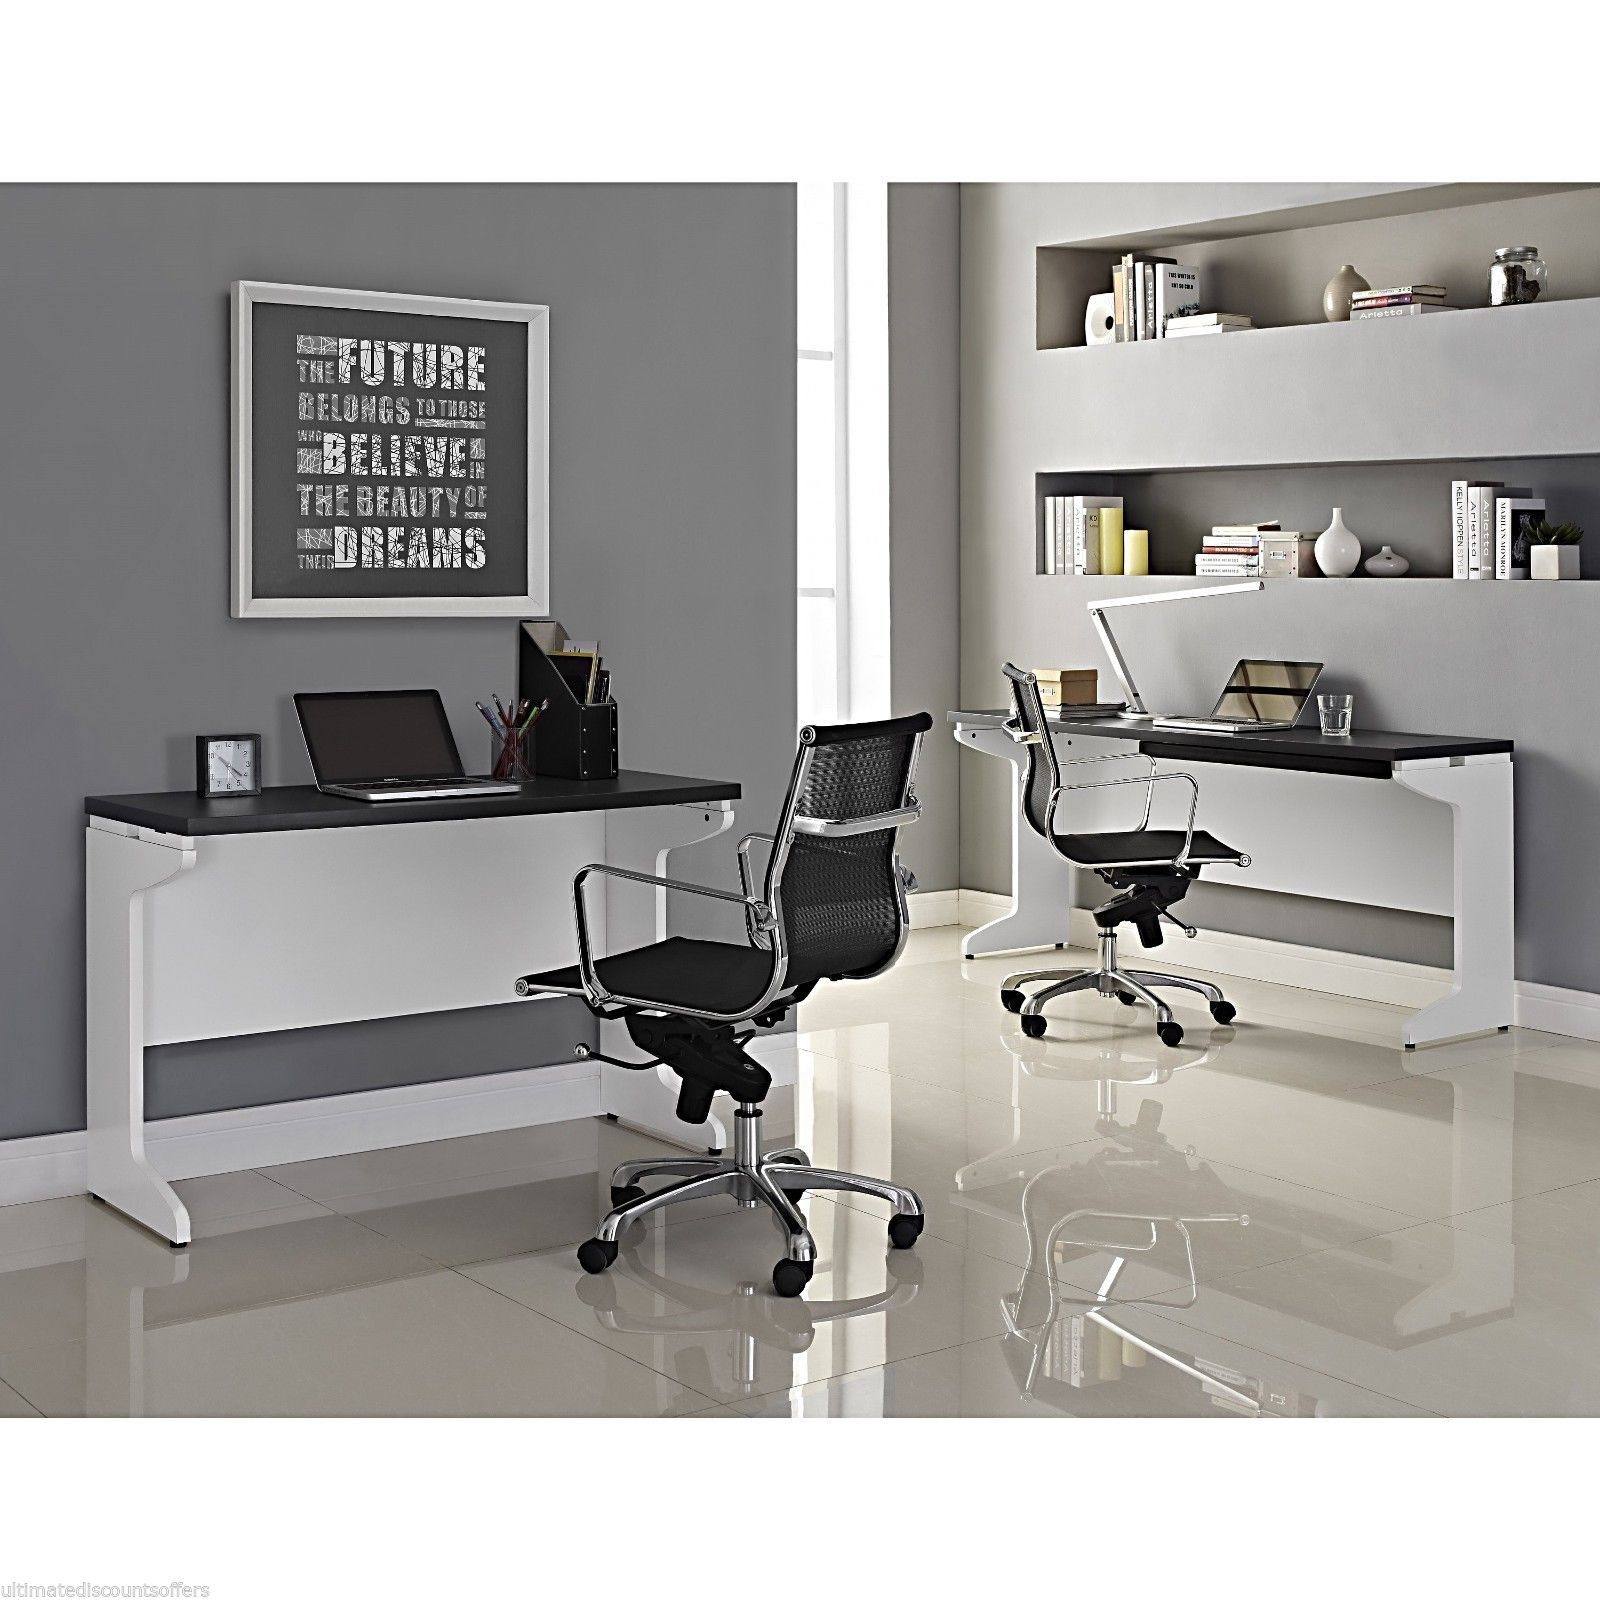 Wonderful image of Executive Office Furniture L Desk Set Wood Modern Home Large Business  with #595146 color and 1600x1600 pixels